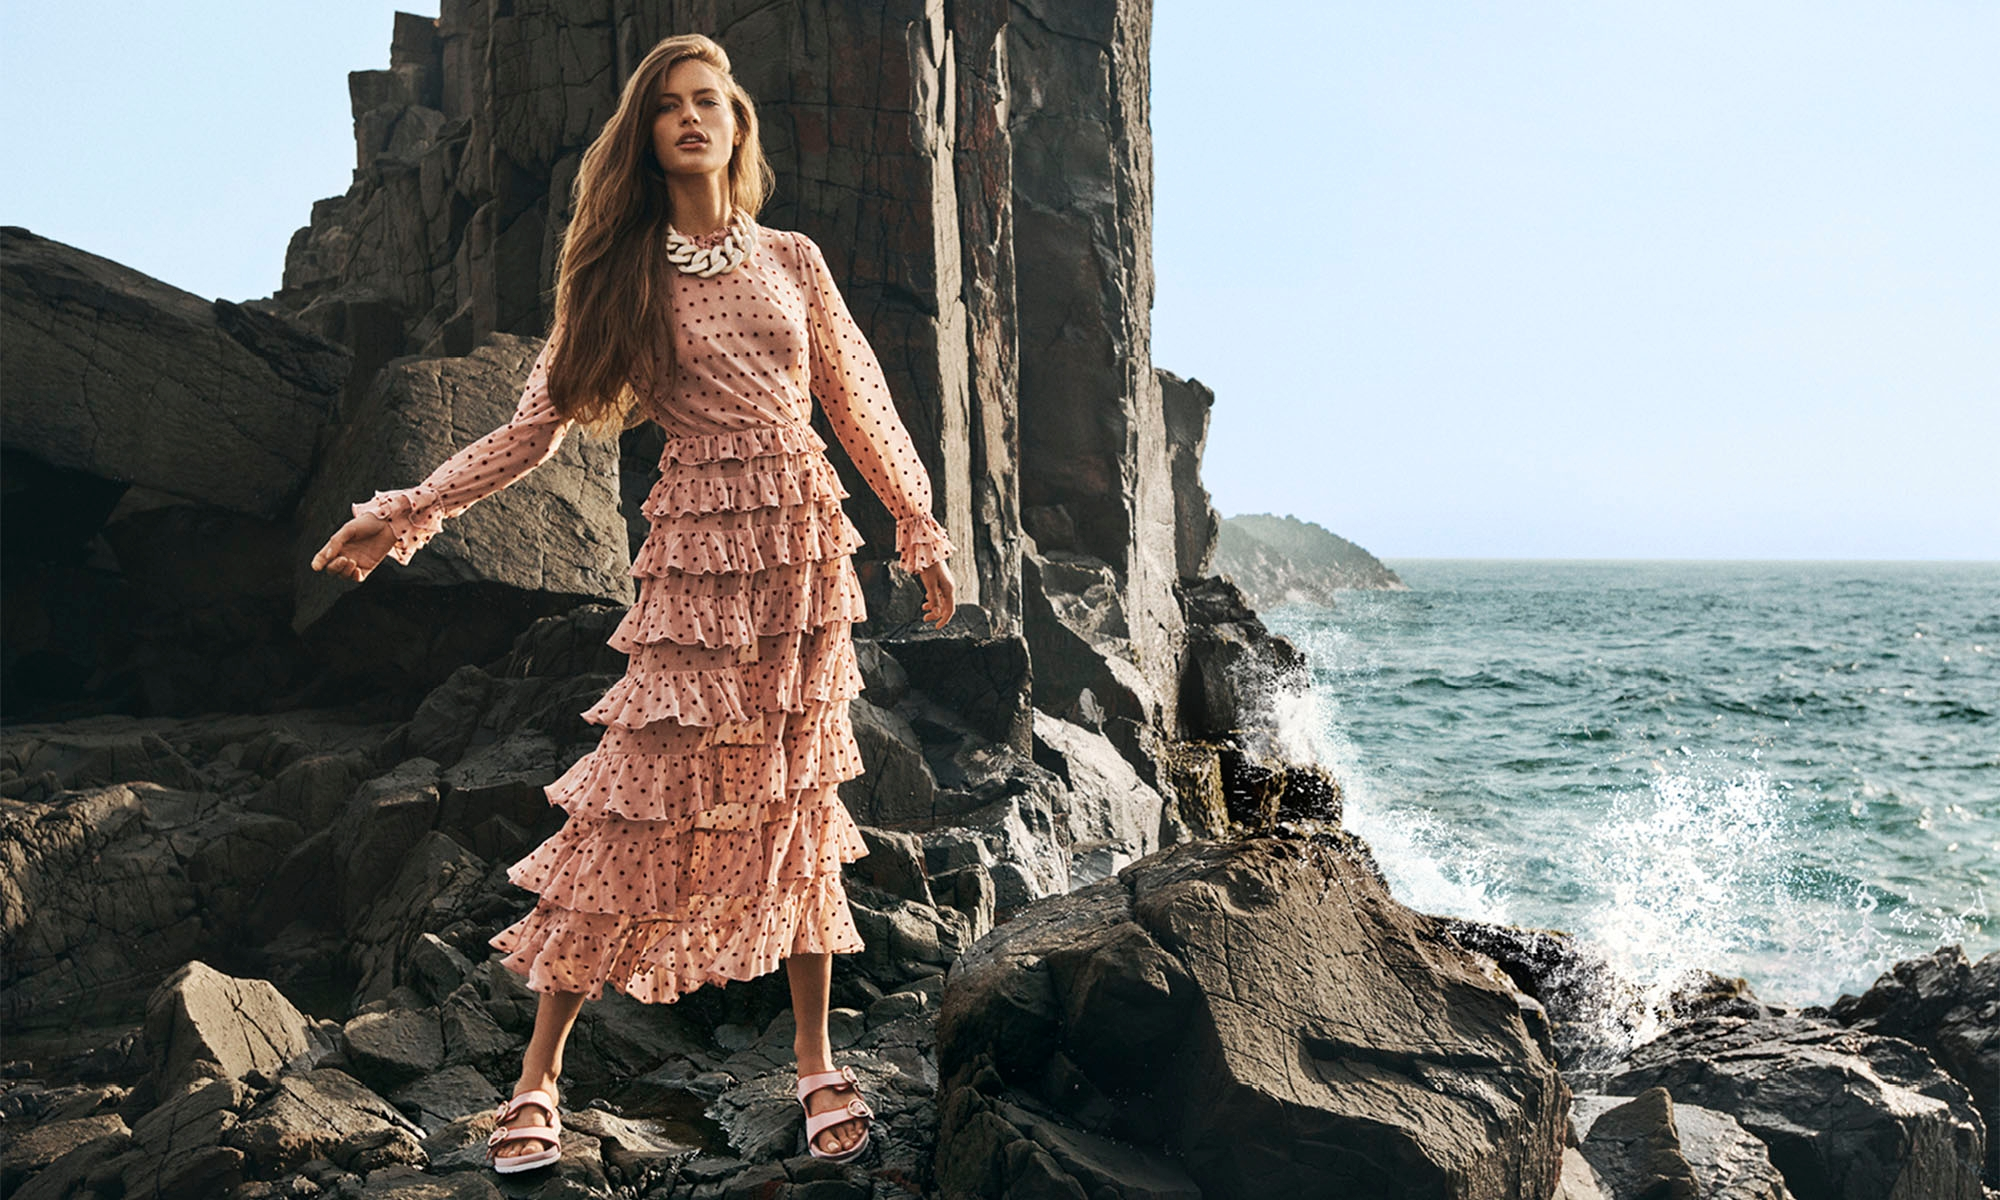 WOMAN STANDING ON THE ROCKS BY THE OCEAN WEARING8135DWAV Wavelength Ruffle Midi, BalletBerry Dot, 3158S20 Satin Slide, Dusty Pink,  3171S20 Resin Link Necklace